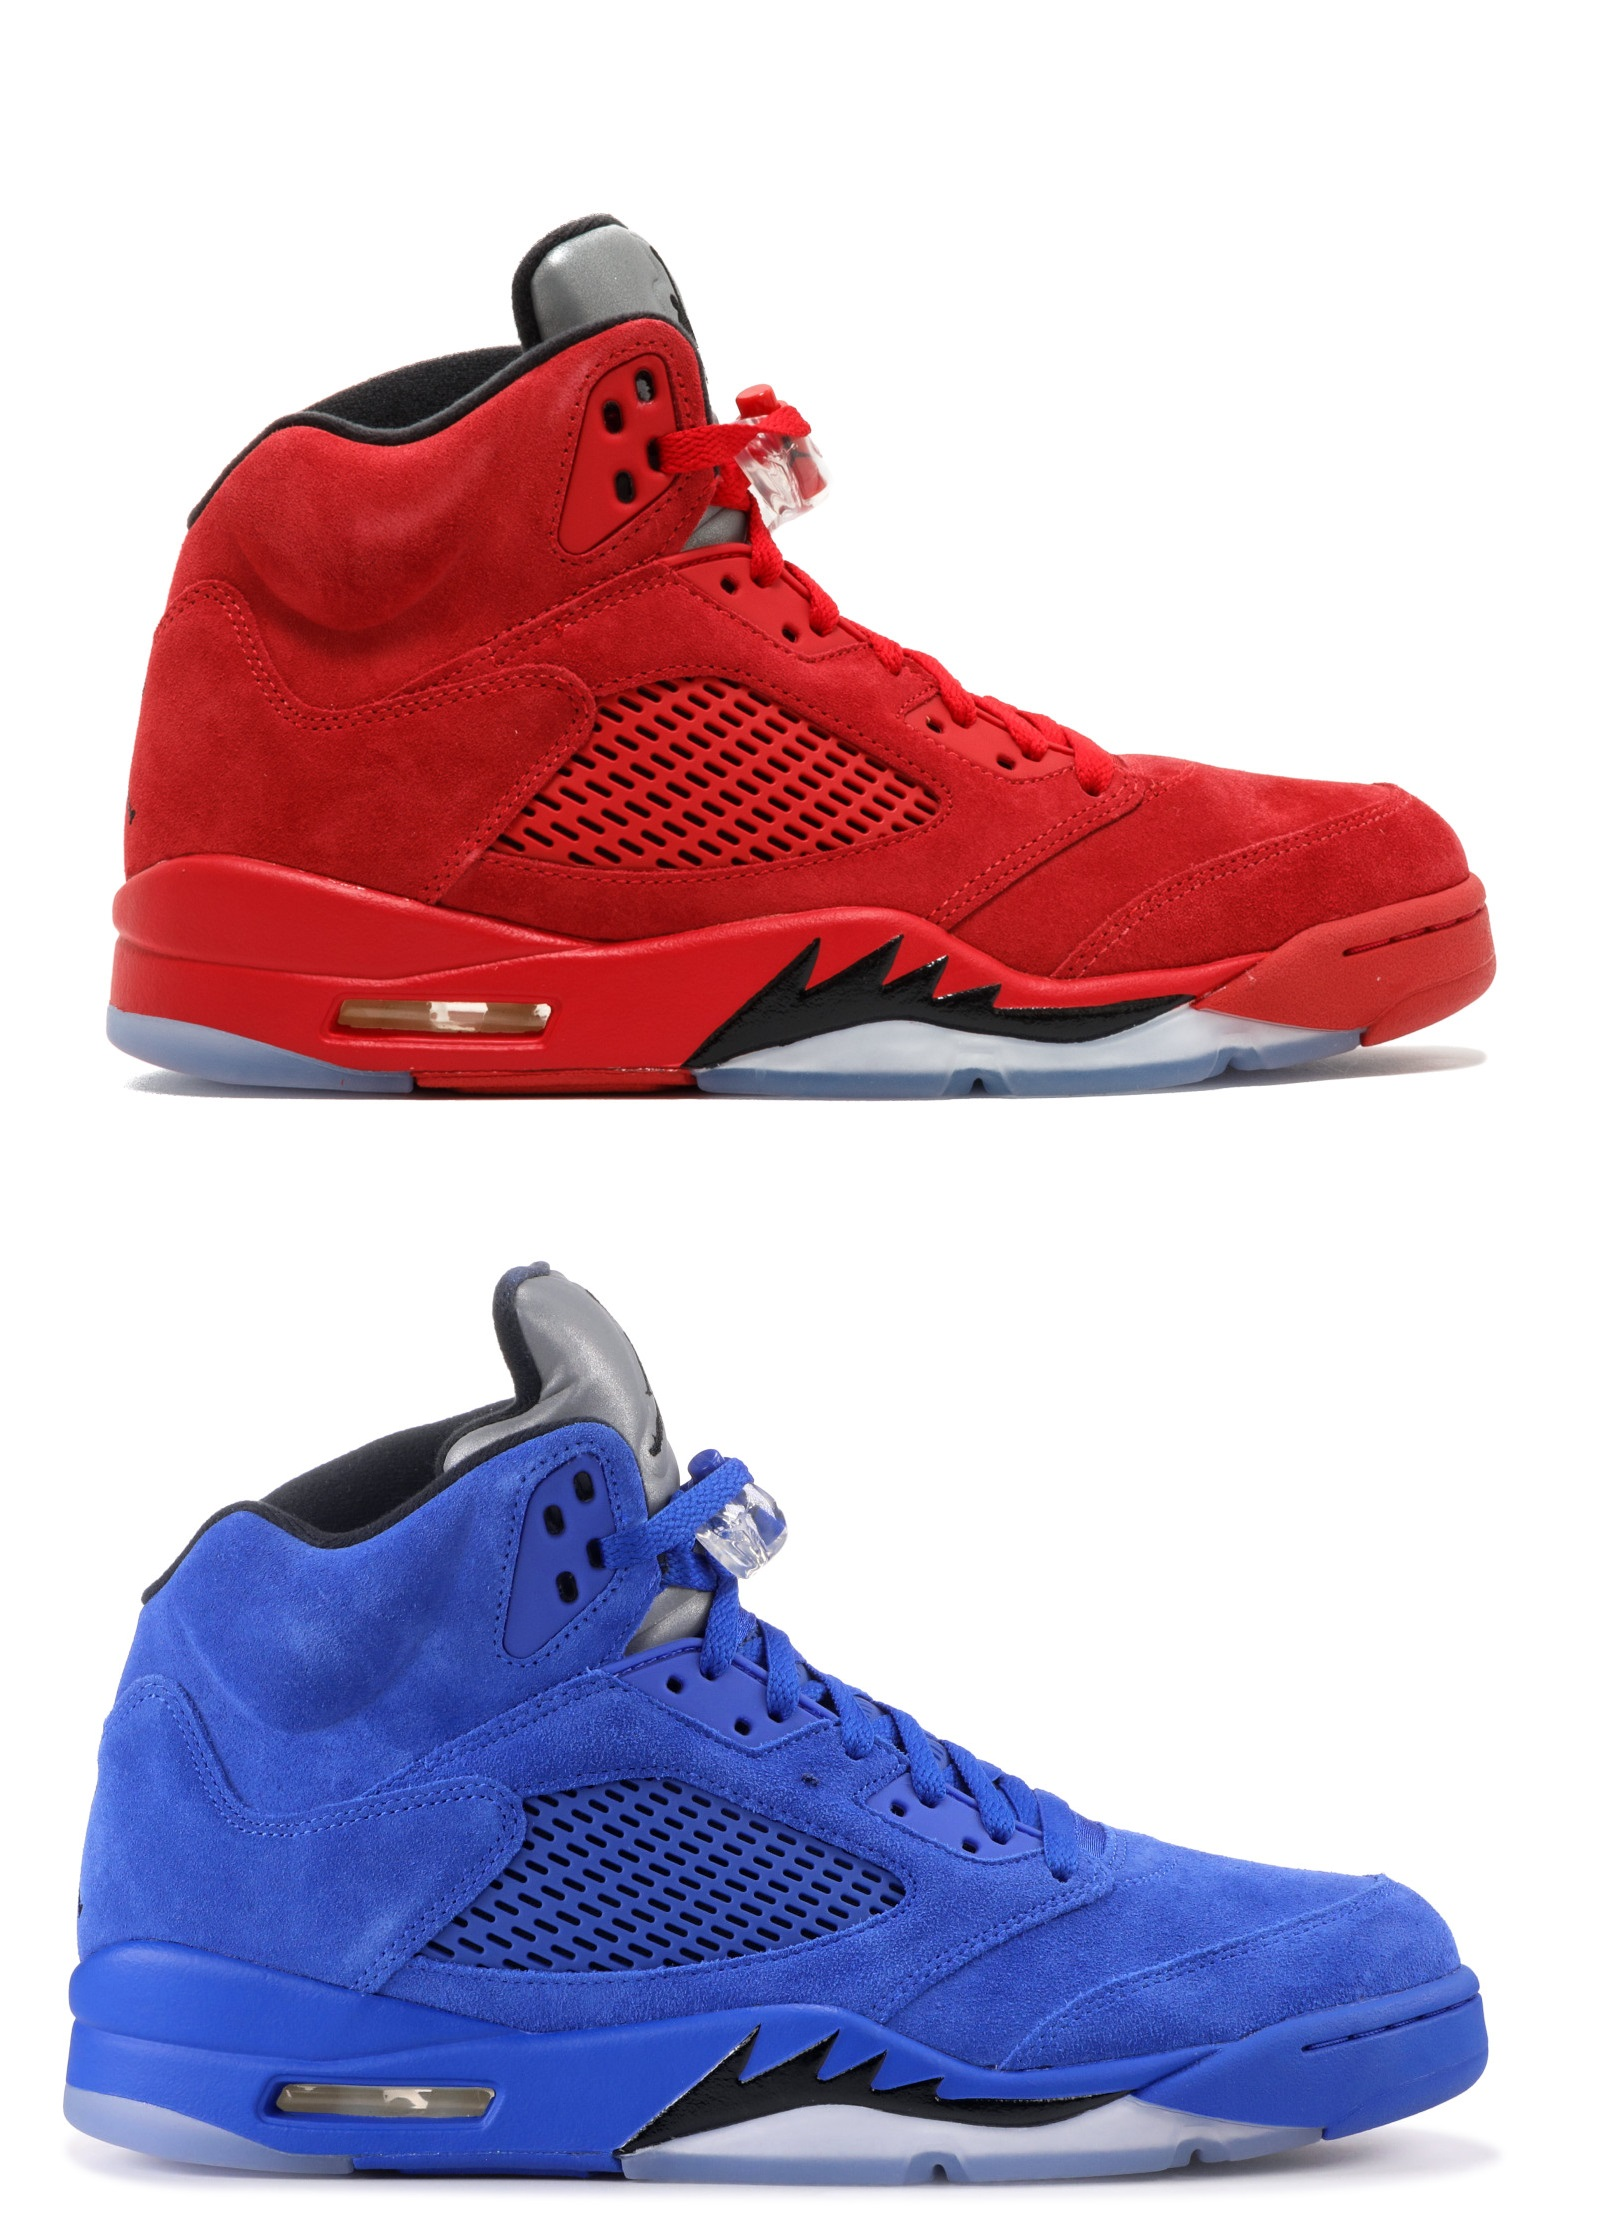 Air Jordan 5 Suede Pack #1